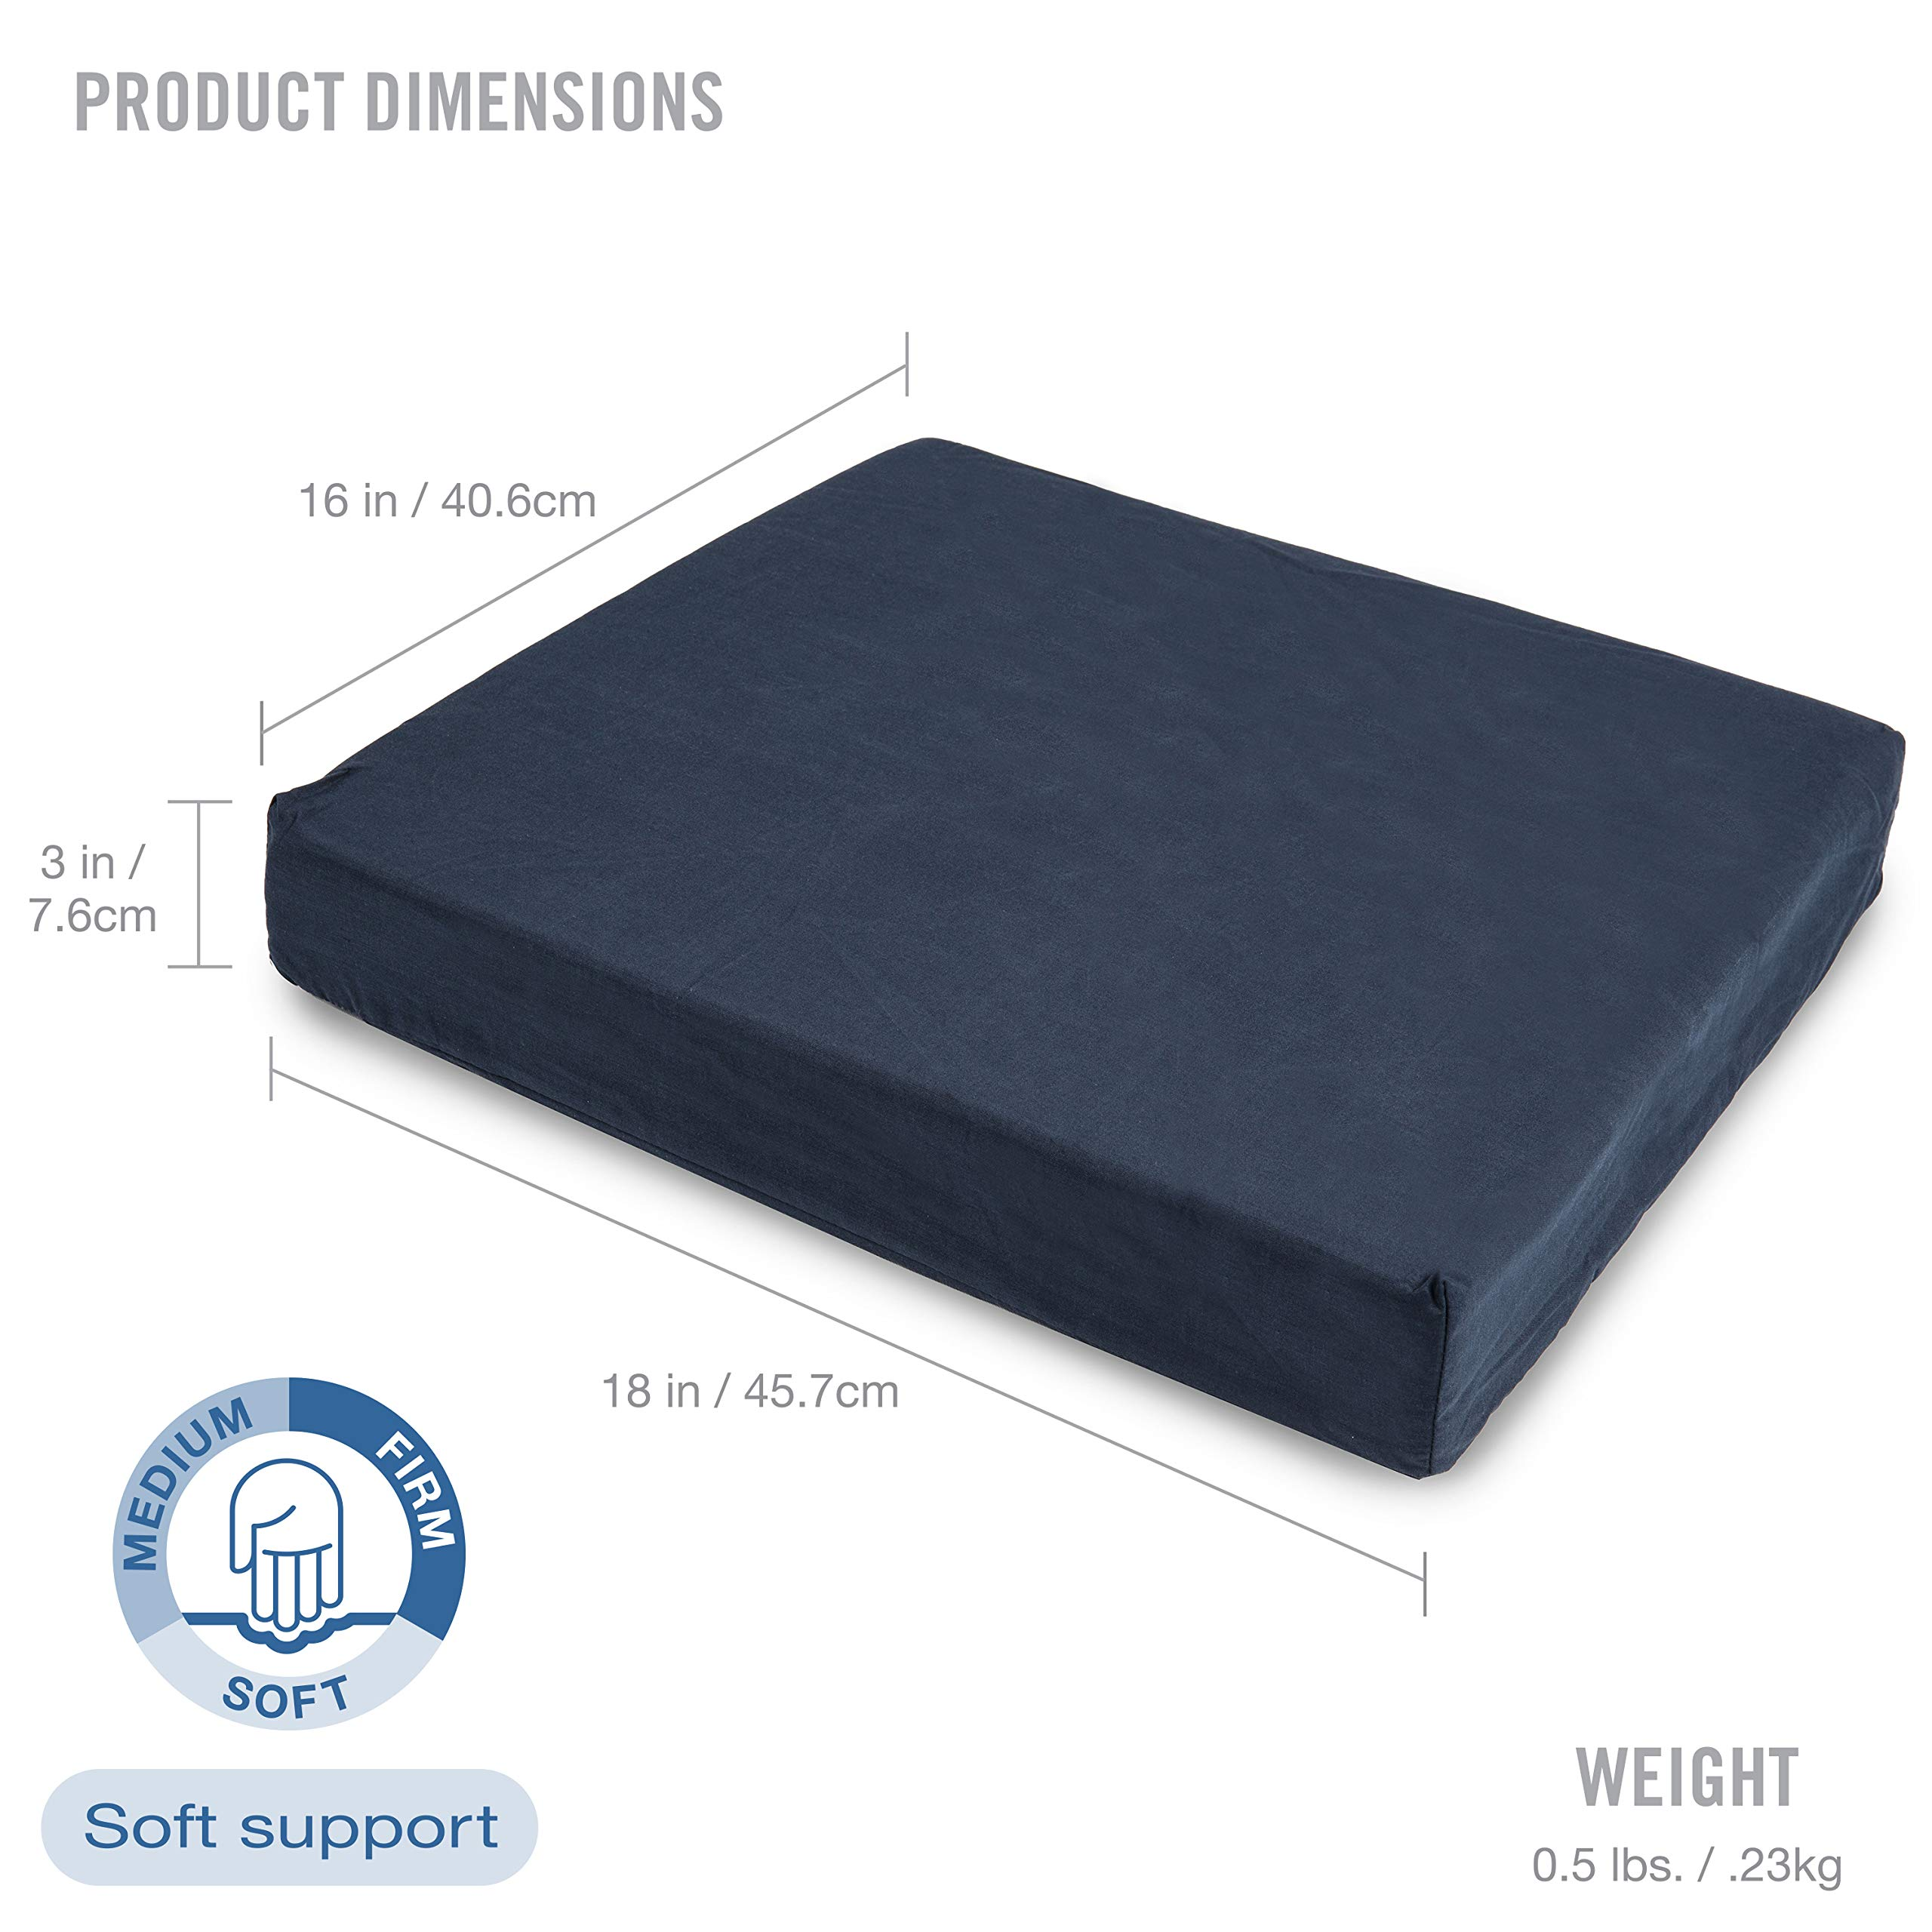 DMI Polyfoam Wheelchair Seat Cushion, Standard Foam Seat Cushion for Chairs, Adds Support, Comfort, Reduces Pressure and Stress on Back, Navy, 3 x 16 x 18 inches